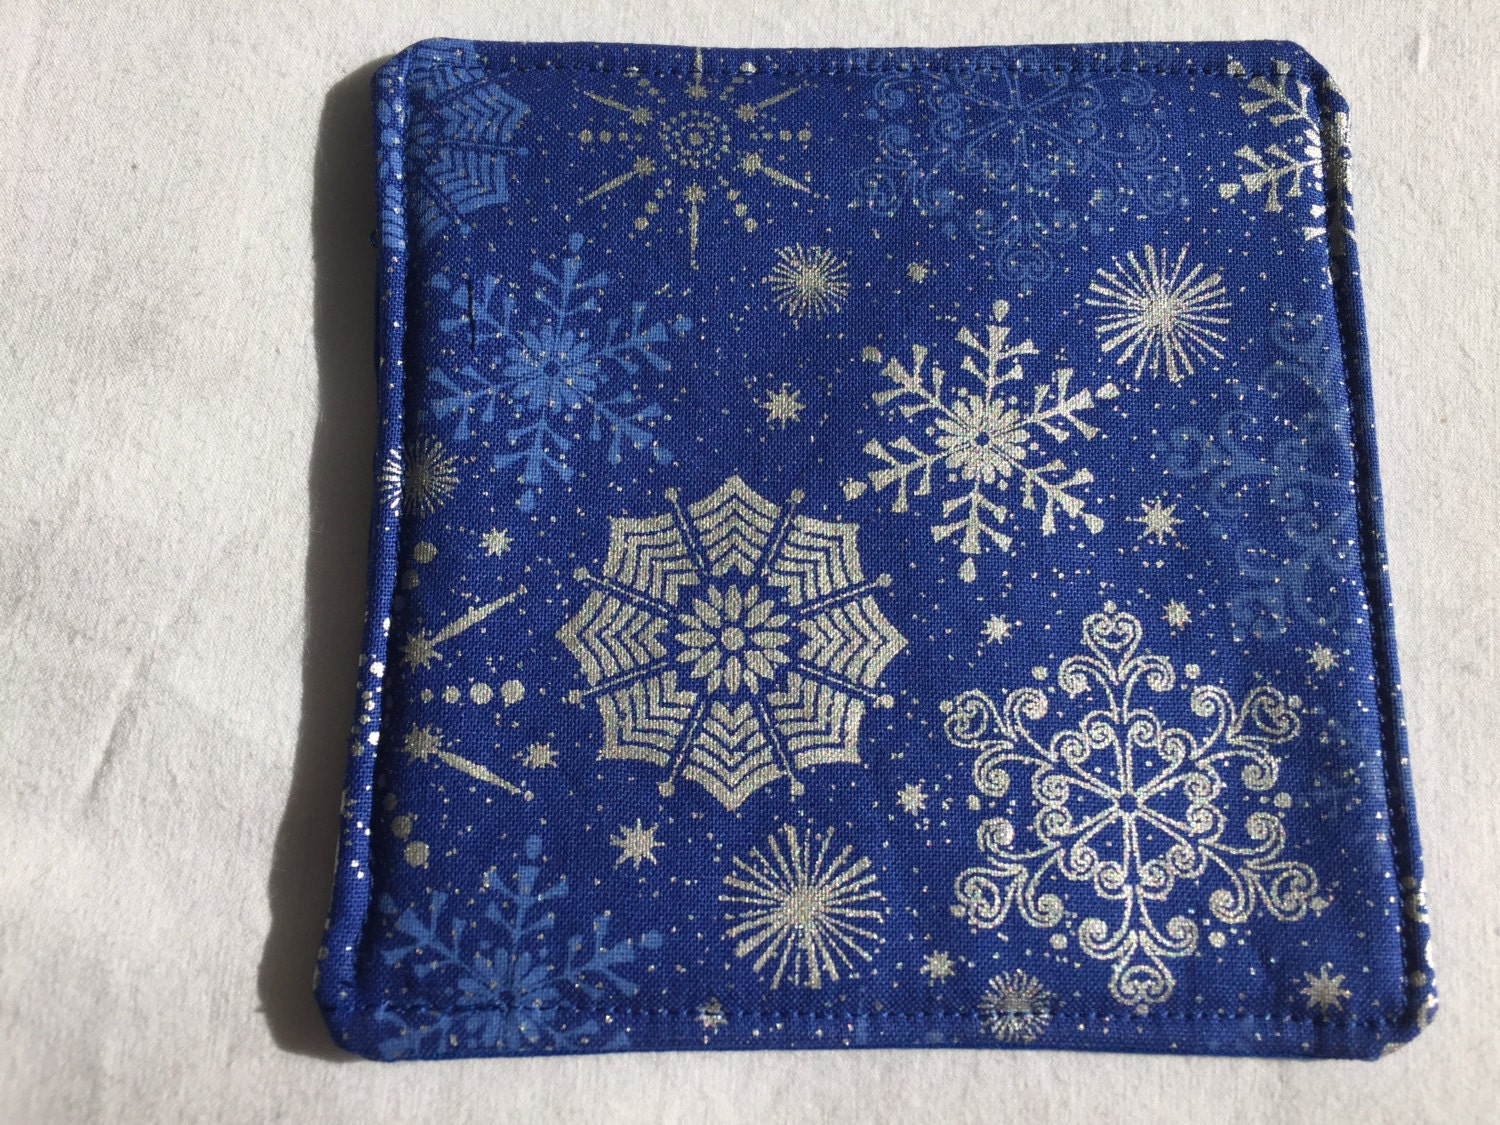 Blue Drink Coasters, Blue Coasters, Absorbent Coasters, Fabric Drink  Coaster, Snowflake Coasters, Winter Coasters, Blue Coaster Set